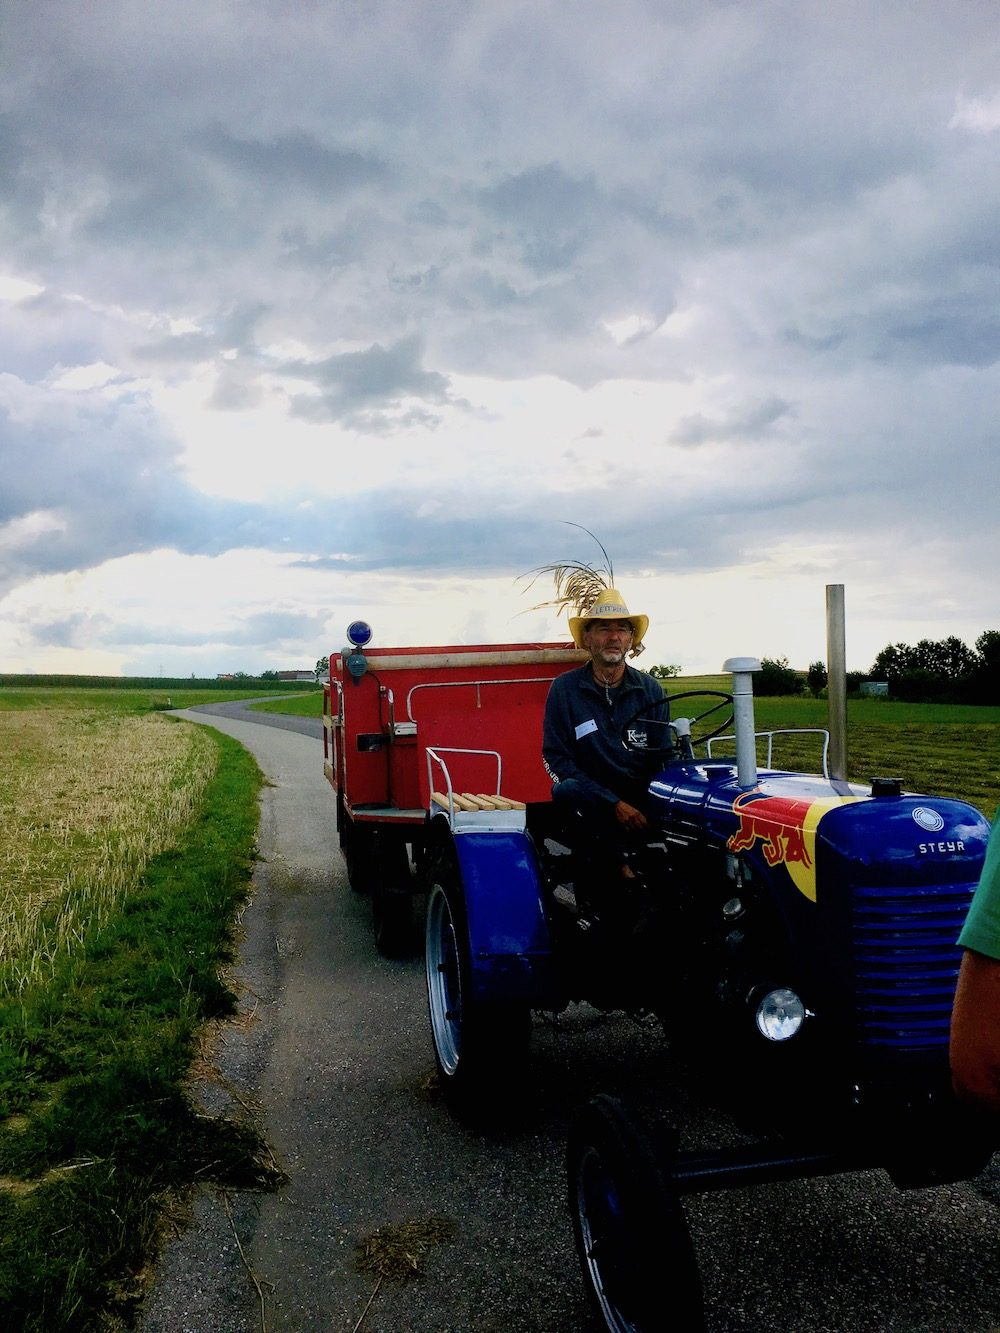 A tractor ride with Hubert